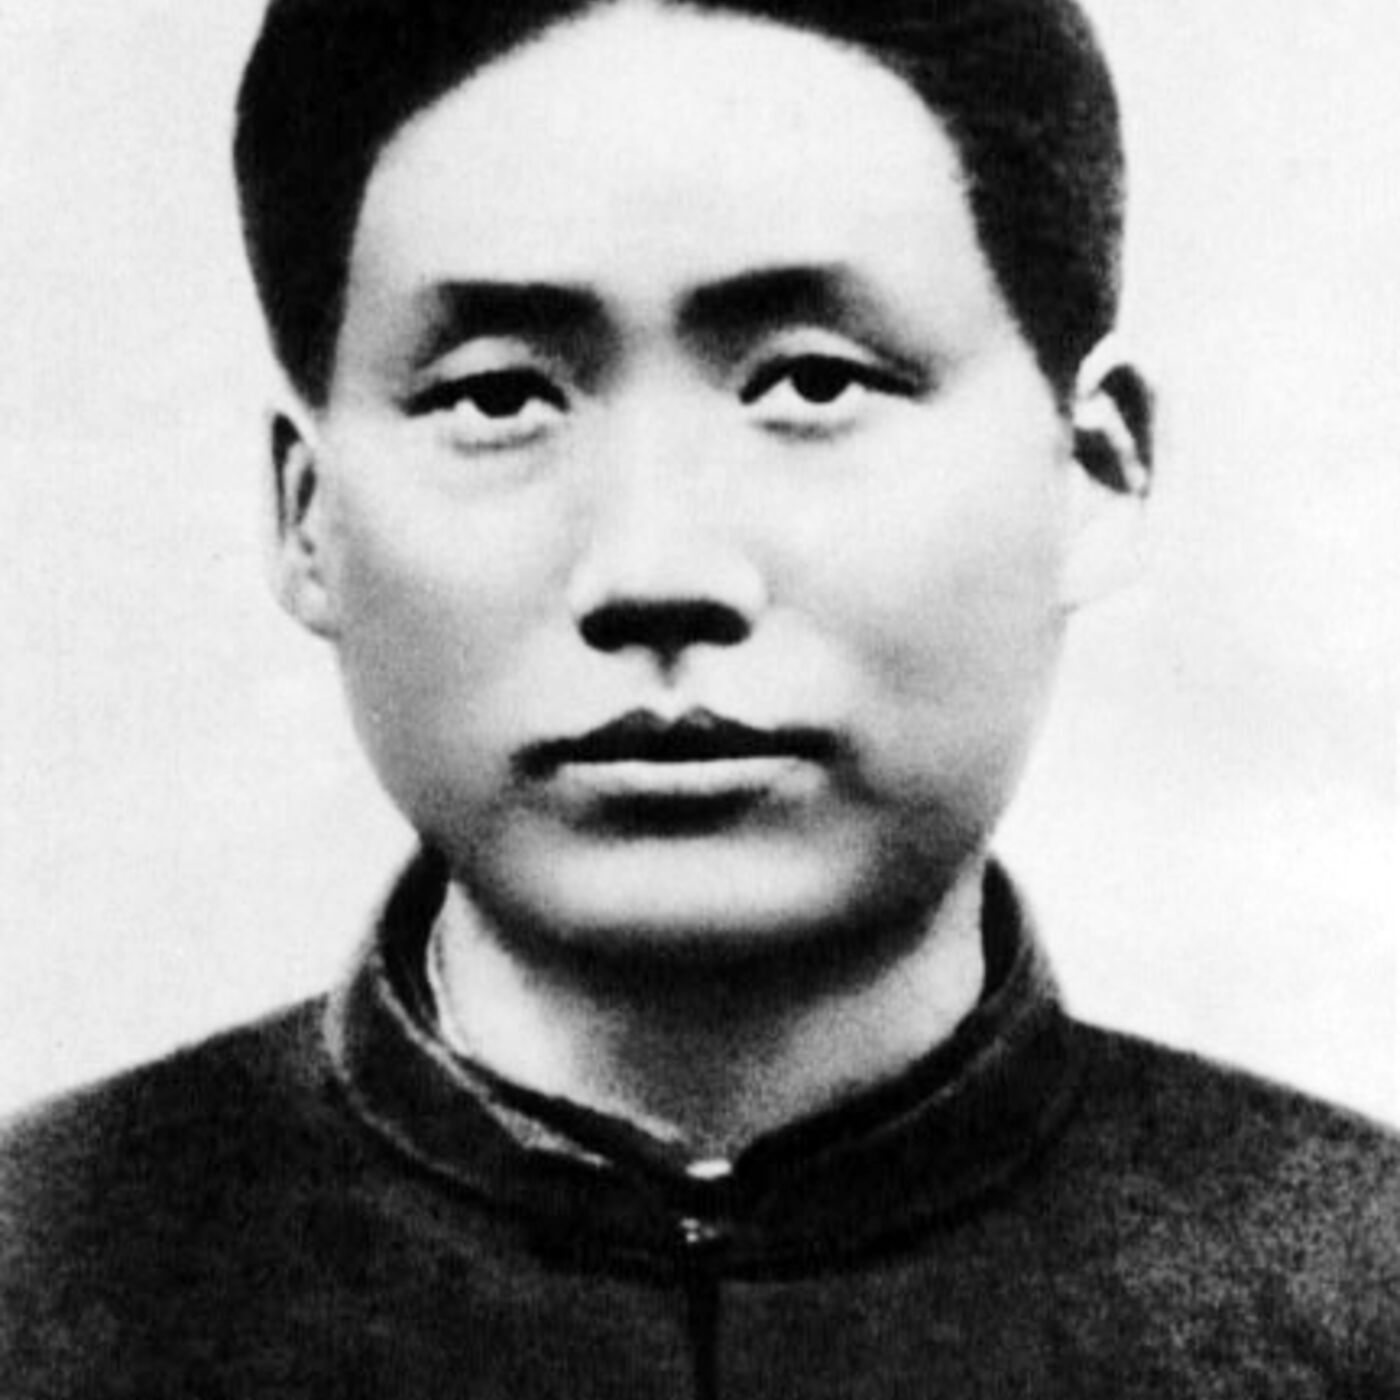 Mao in 1926: War in Hunan, Coup in Guangzhou, Polemicizing for the Peasant Movement